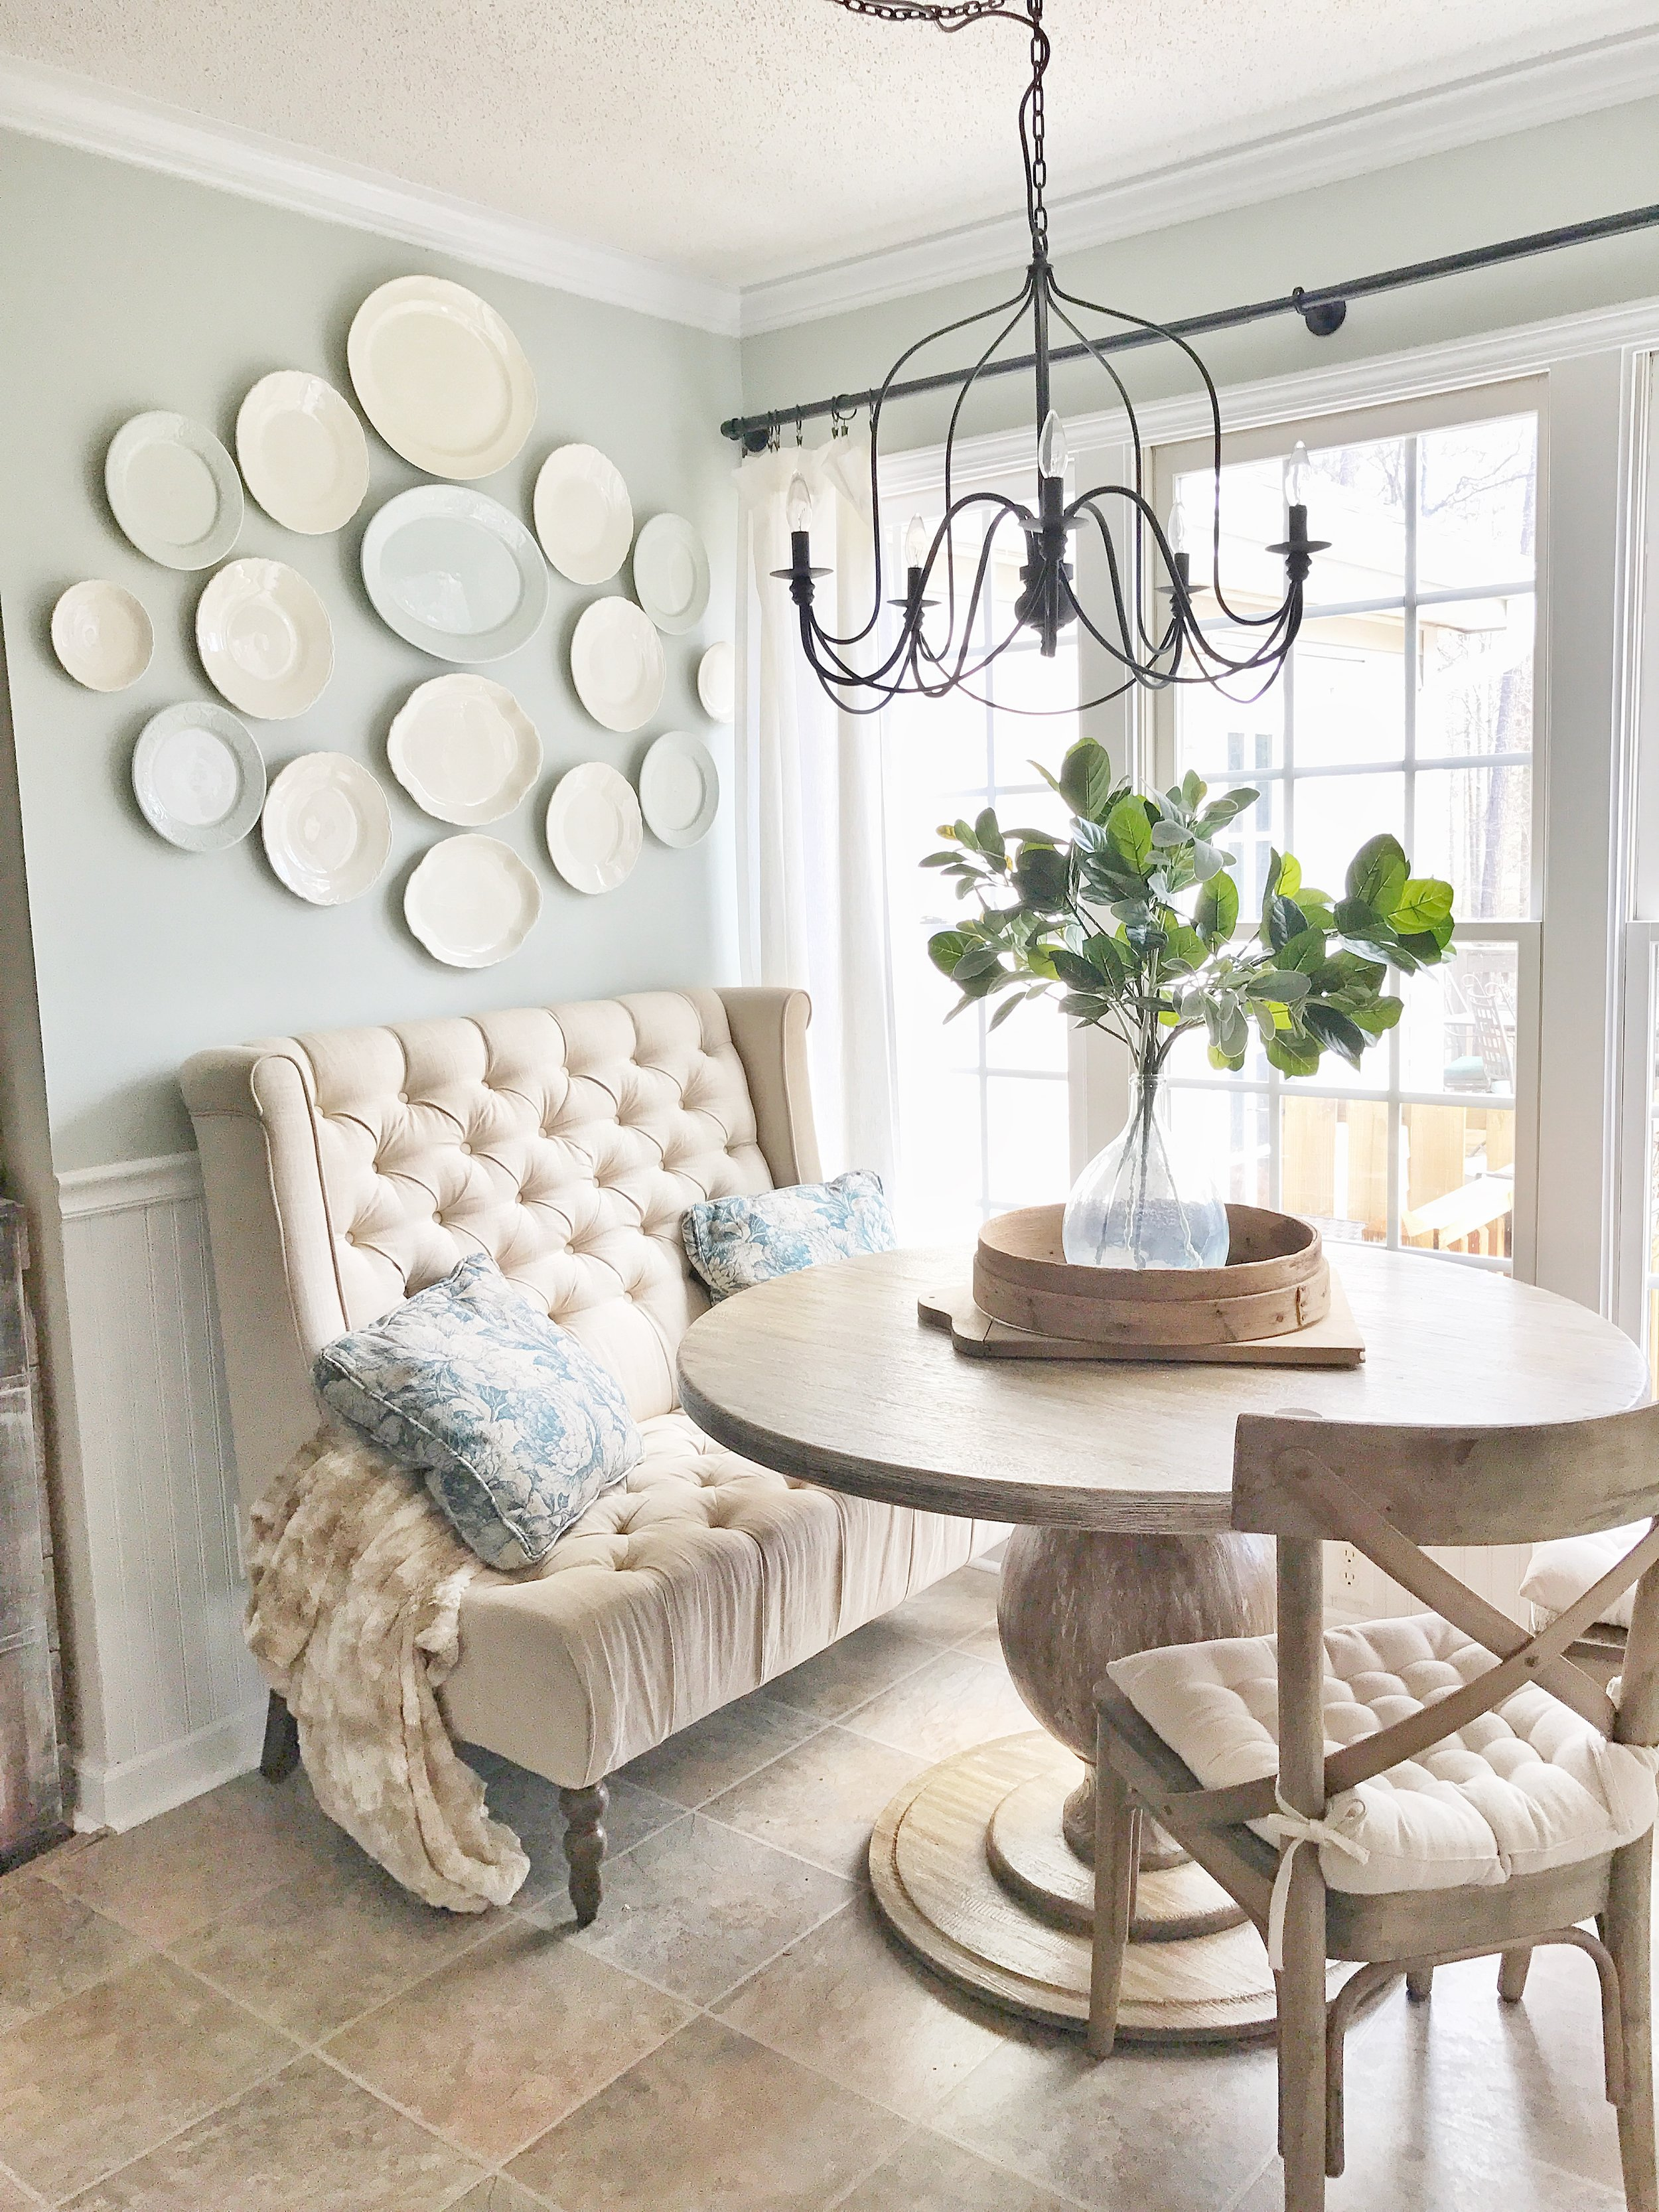 Home Tour- Farmhouse Style Breakfast Nook with a White Plate Wall by Plum Pretty Decor and Design